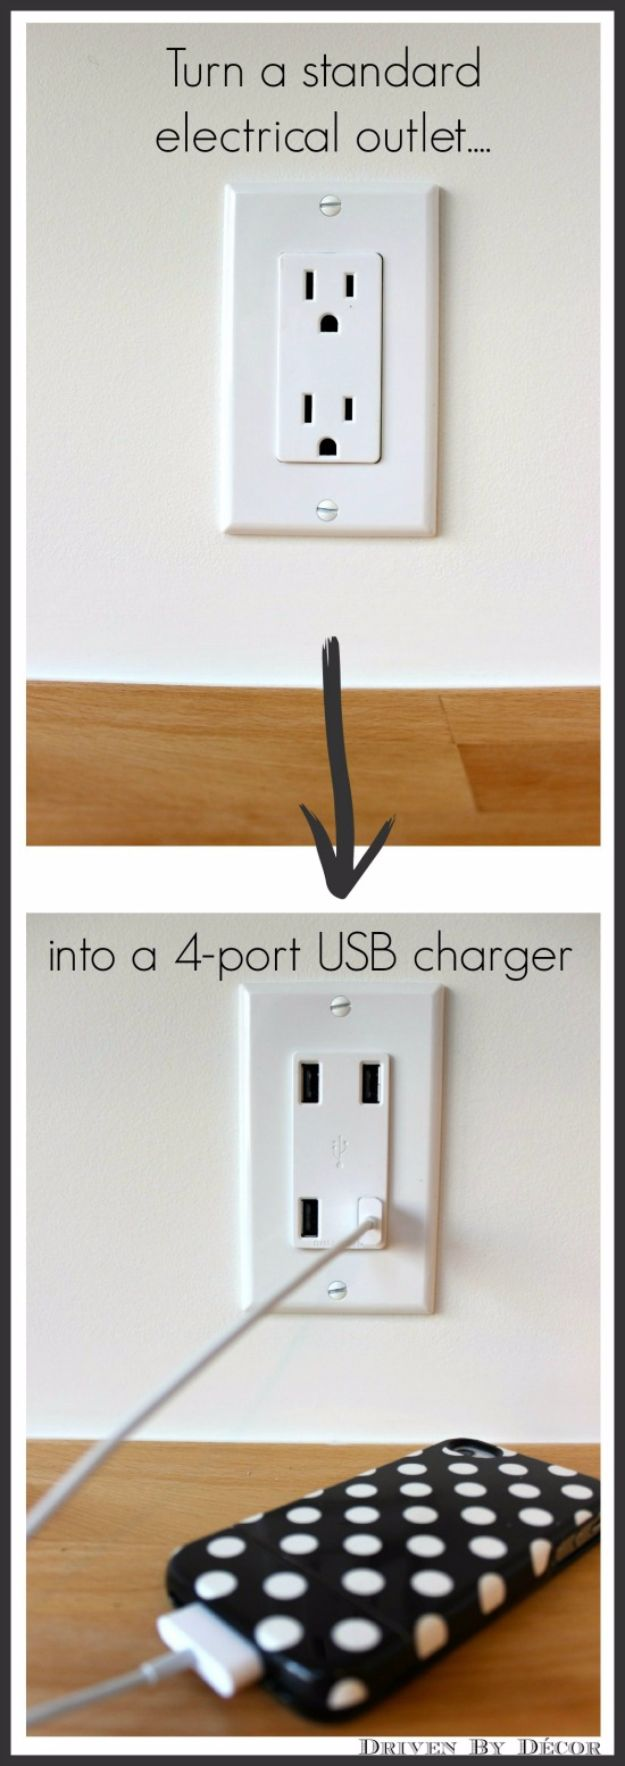 DIY Gadgets - Turn A Standard Electrical Outlet Into A 4-Port USB Charger - Homemade Gadget Ideas and Projects for Men, Women, Teens and Kids - Steampunk Inventions, How To Build Easy Electronics, Cool Spy Gear and Do It Yourself Tech Toys #gadgets #diy #stem #diytoys